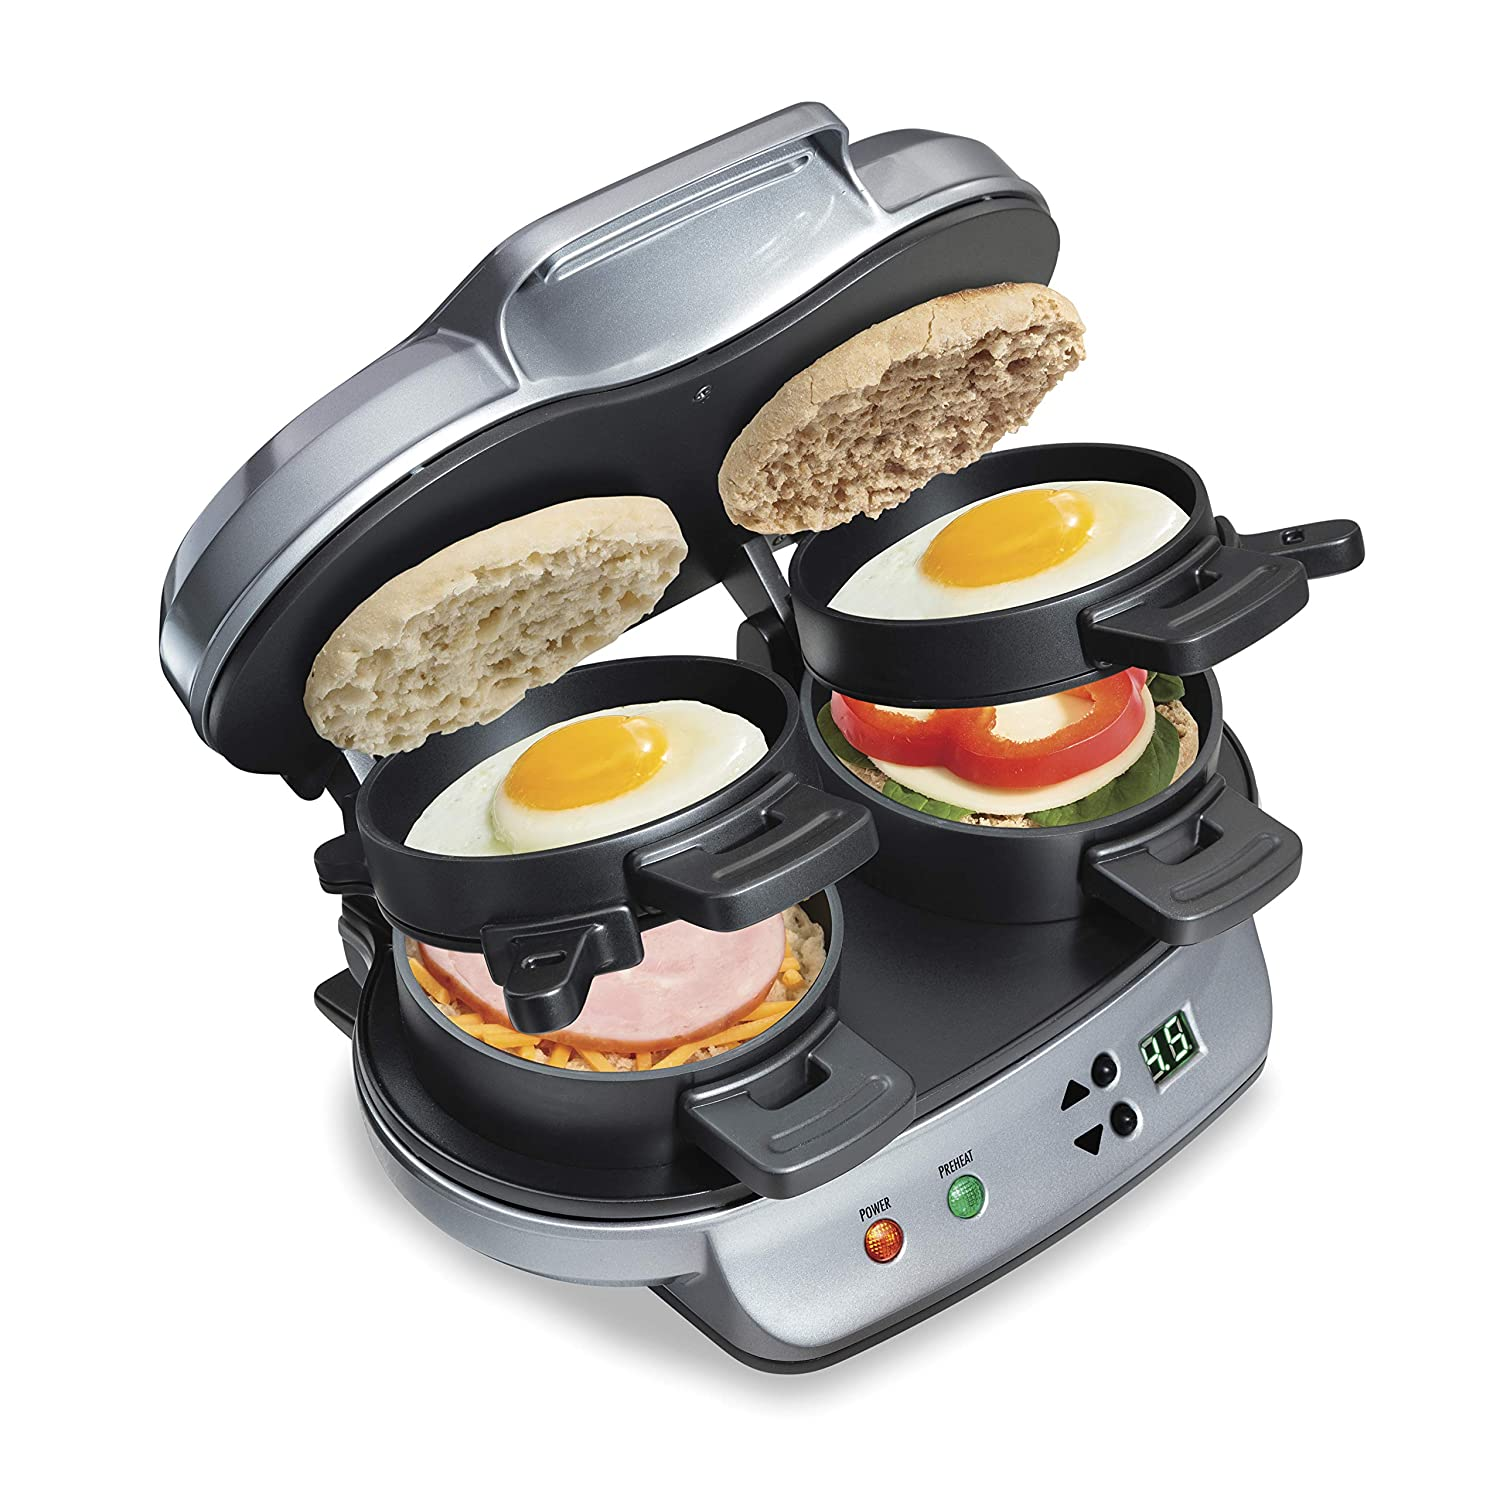 Top 10 Best Sandwich Makers Reviews in 2020 2